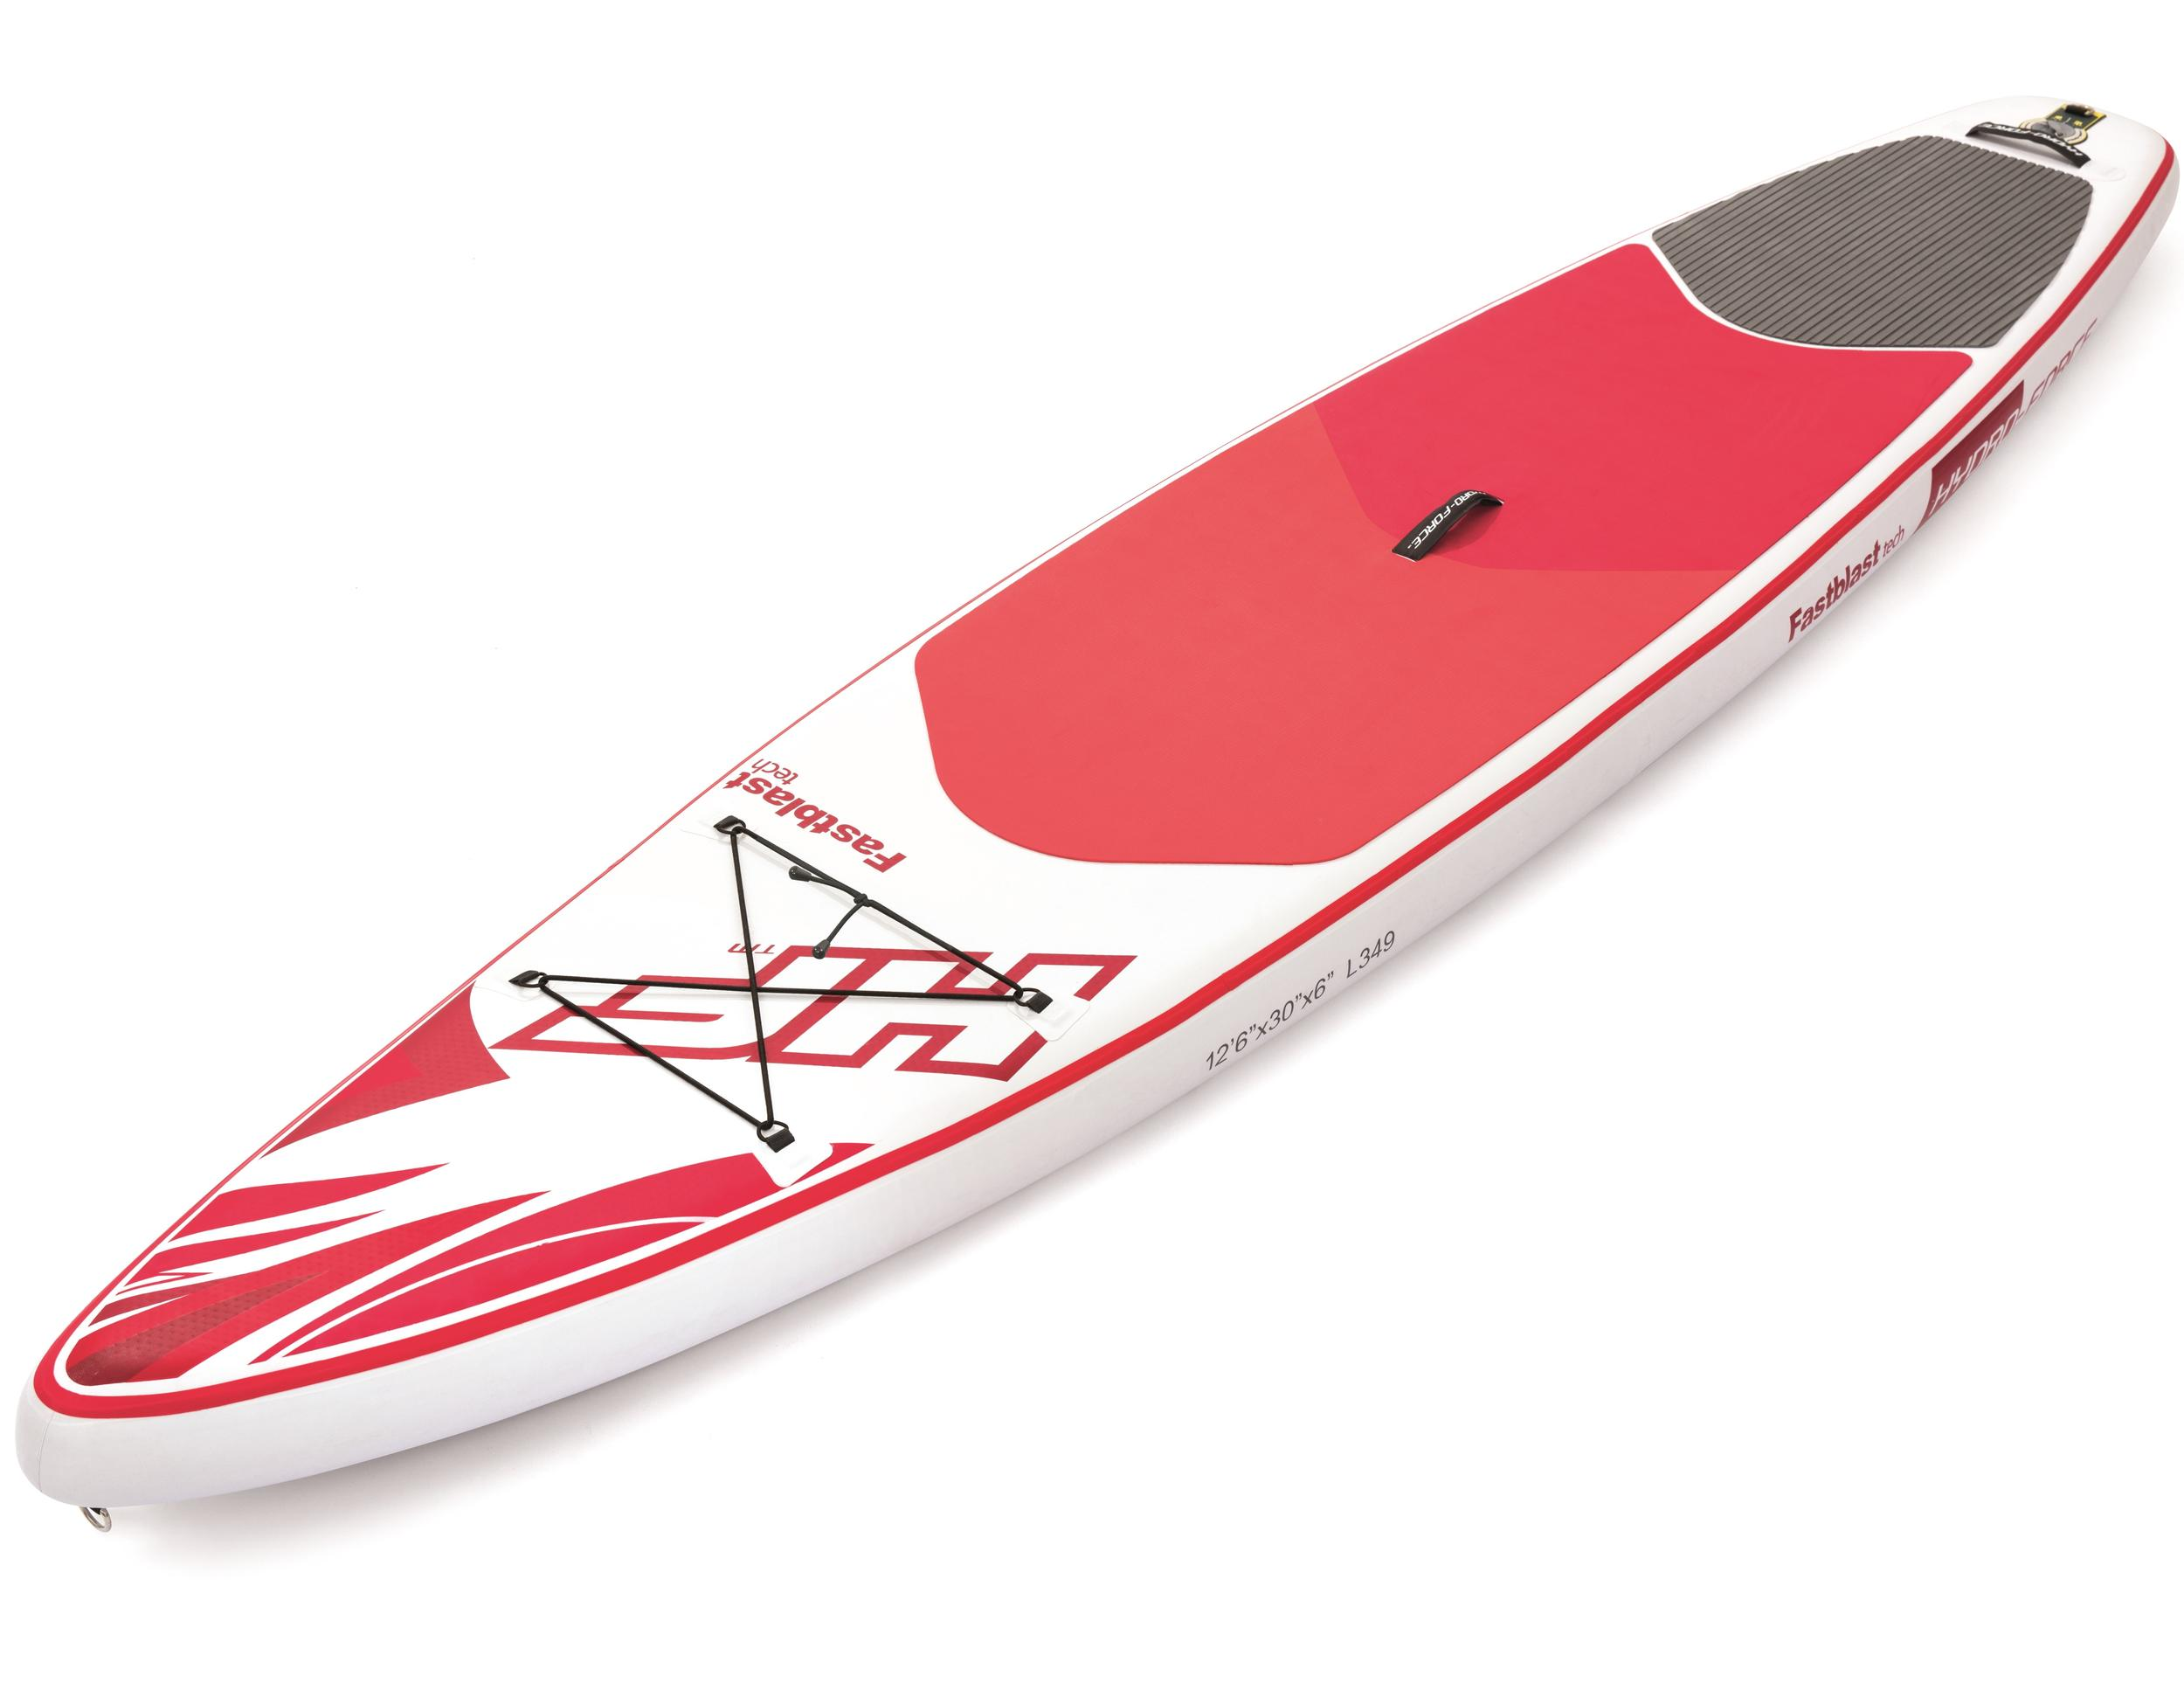 SUP-lauta Bestway Hydro-Force Fastblast Tech 381x76x15 cm